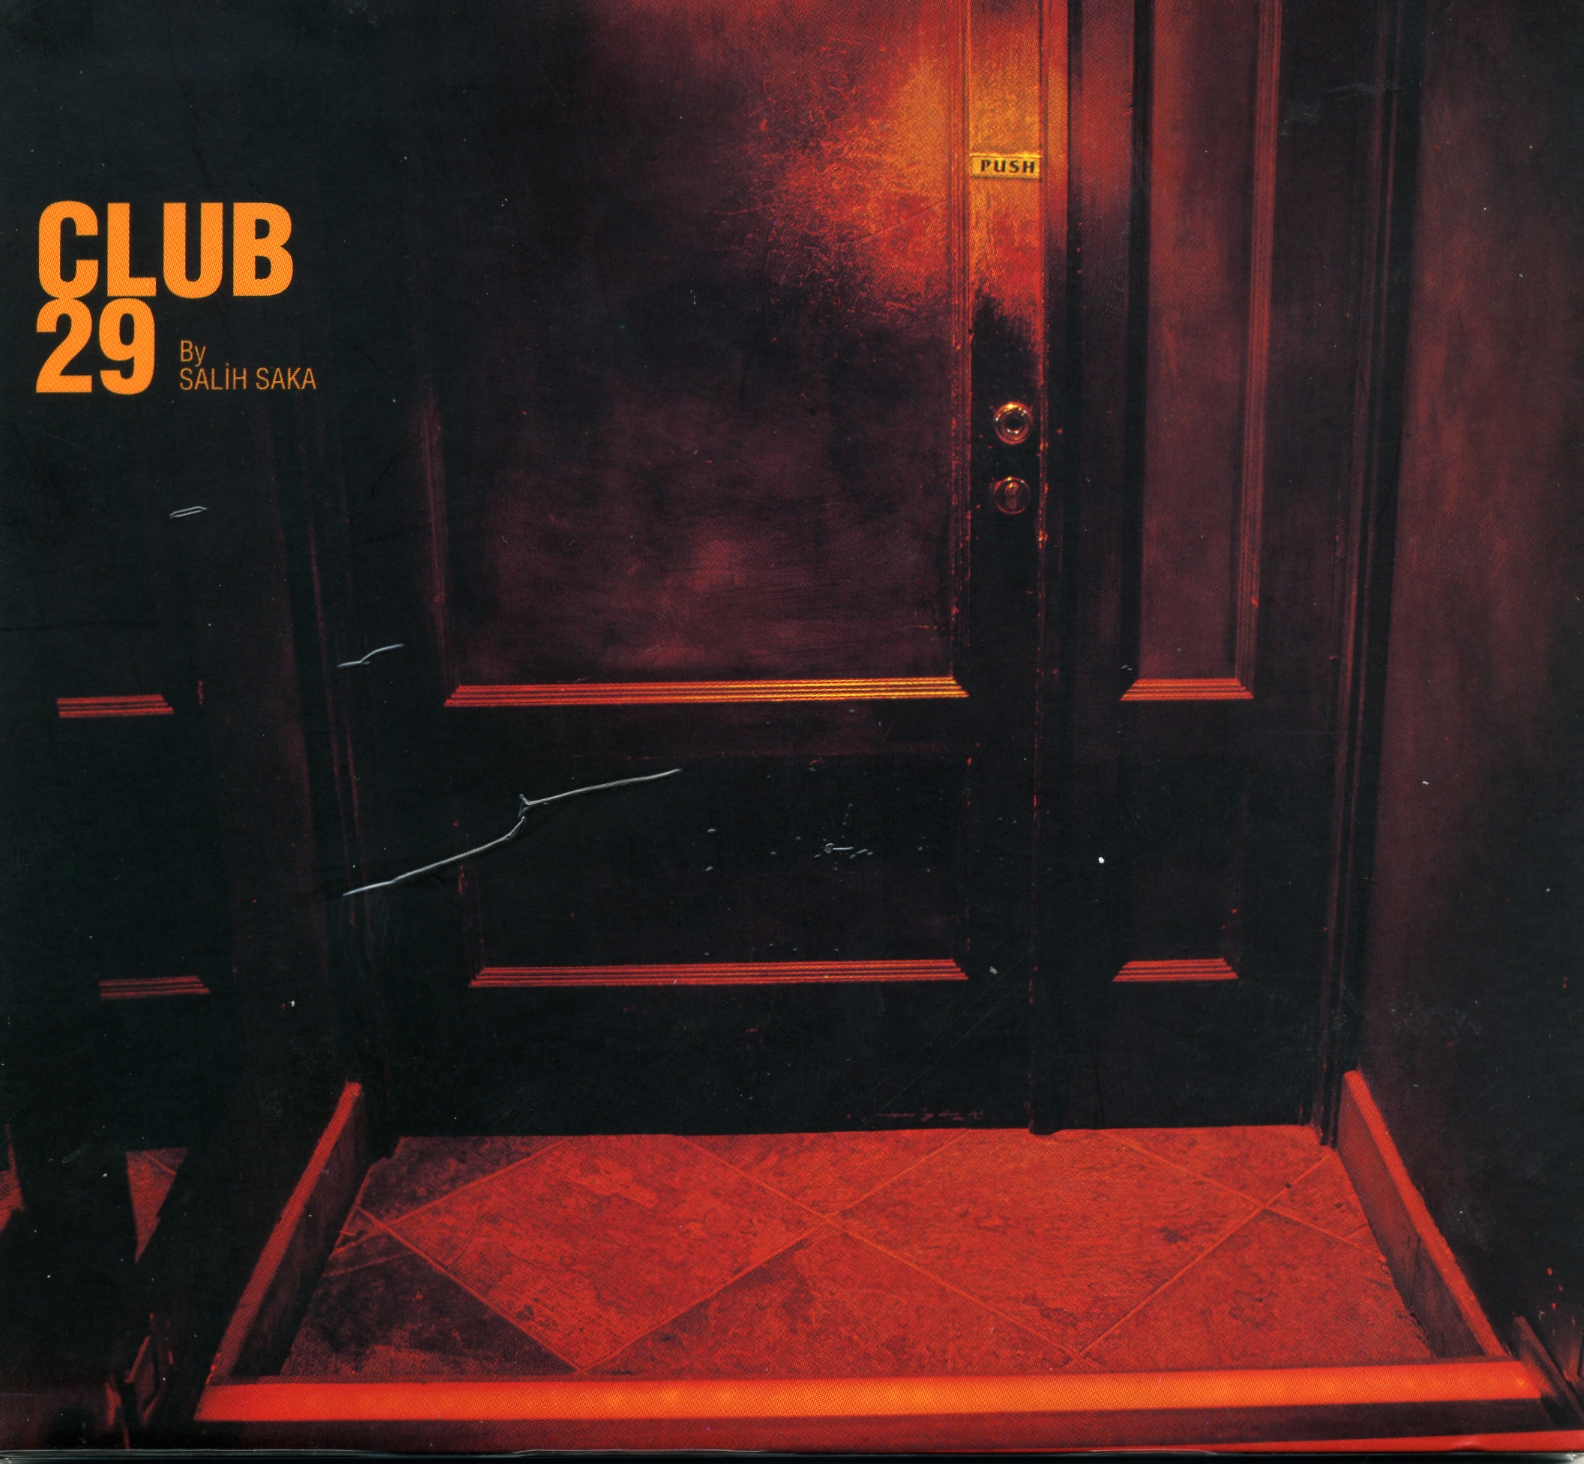 Club 29 by Salih Saka